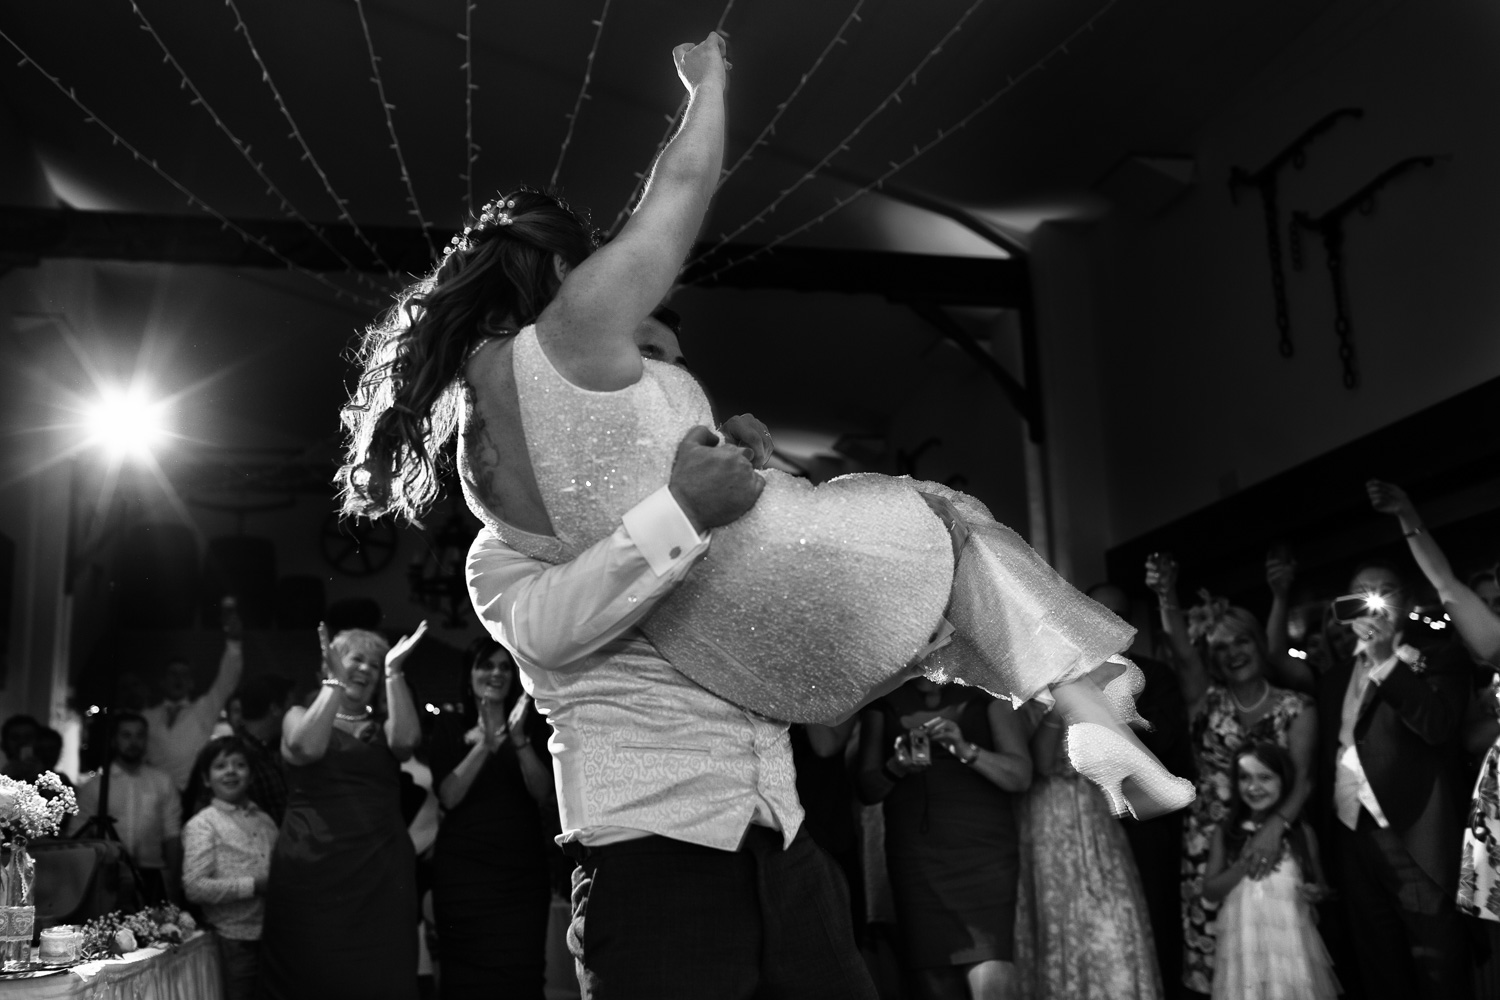 South-West-Wedding-photographer-Mark-Barnes-Yarlington-Barn-wedding-photography-79.jpg